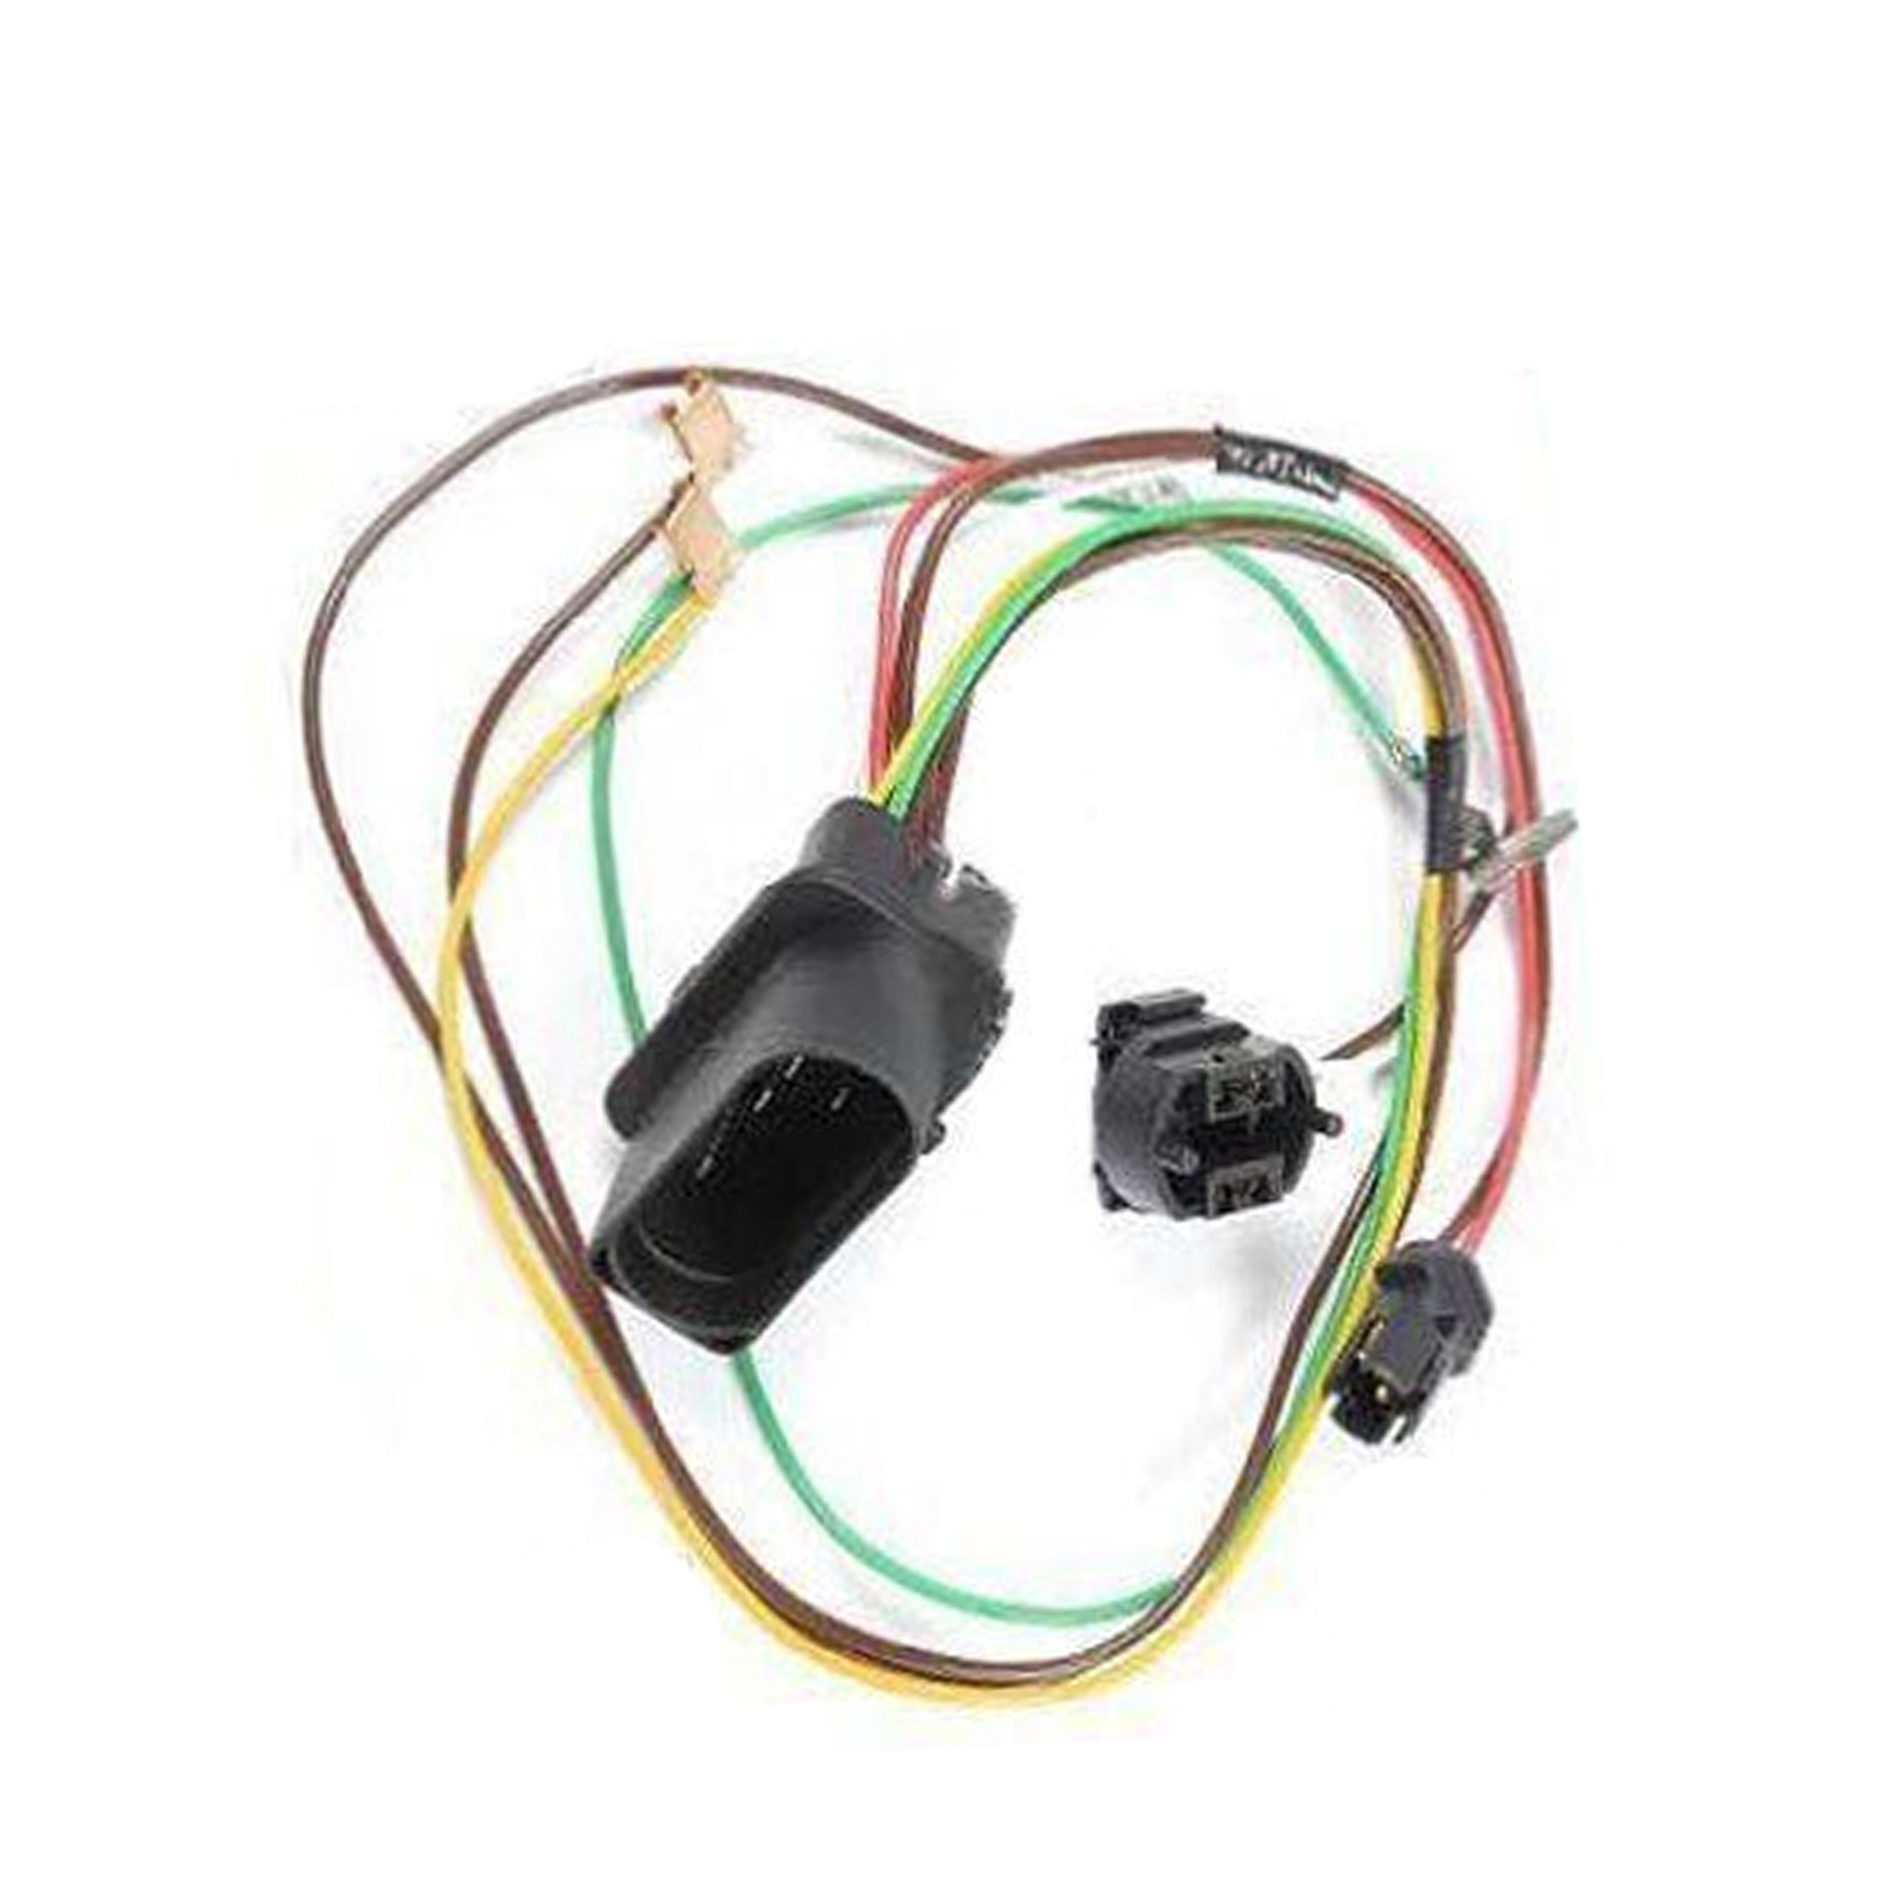 details about for vw passat 3b0971671 brand new headlight wire harness  connector repair kit